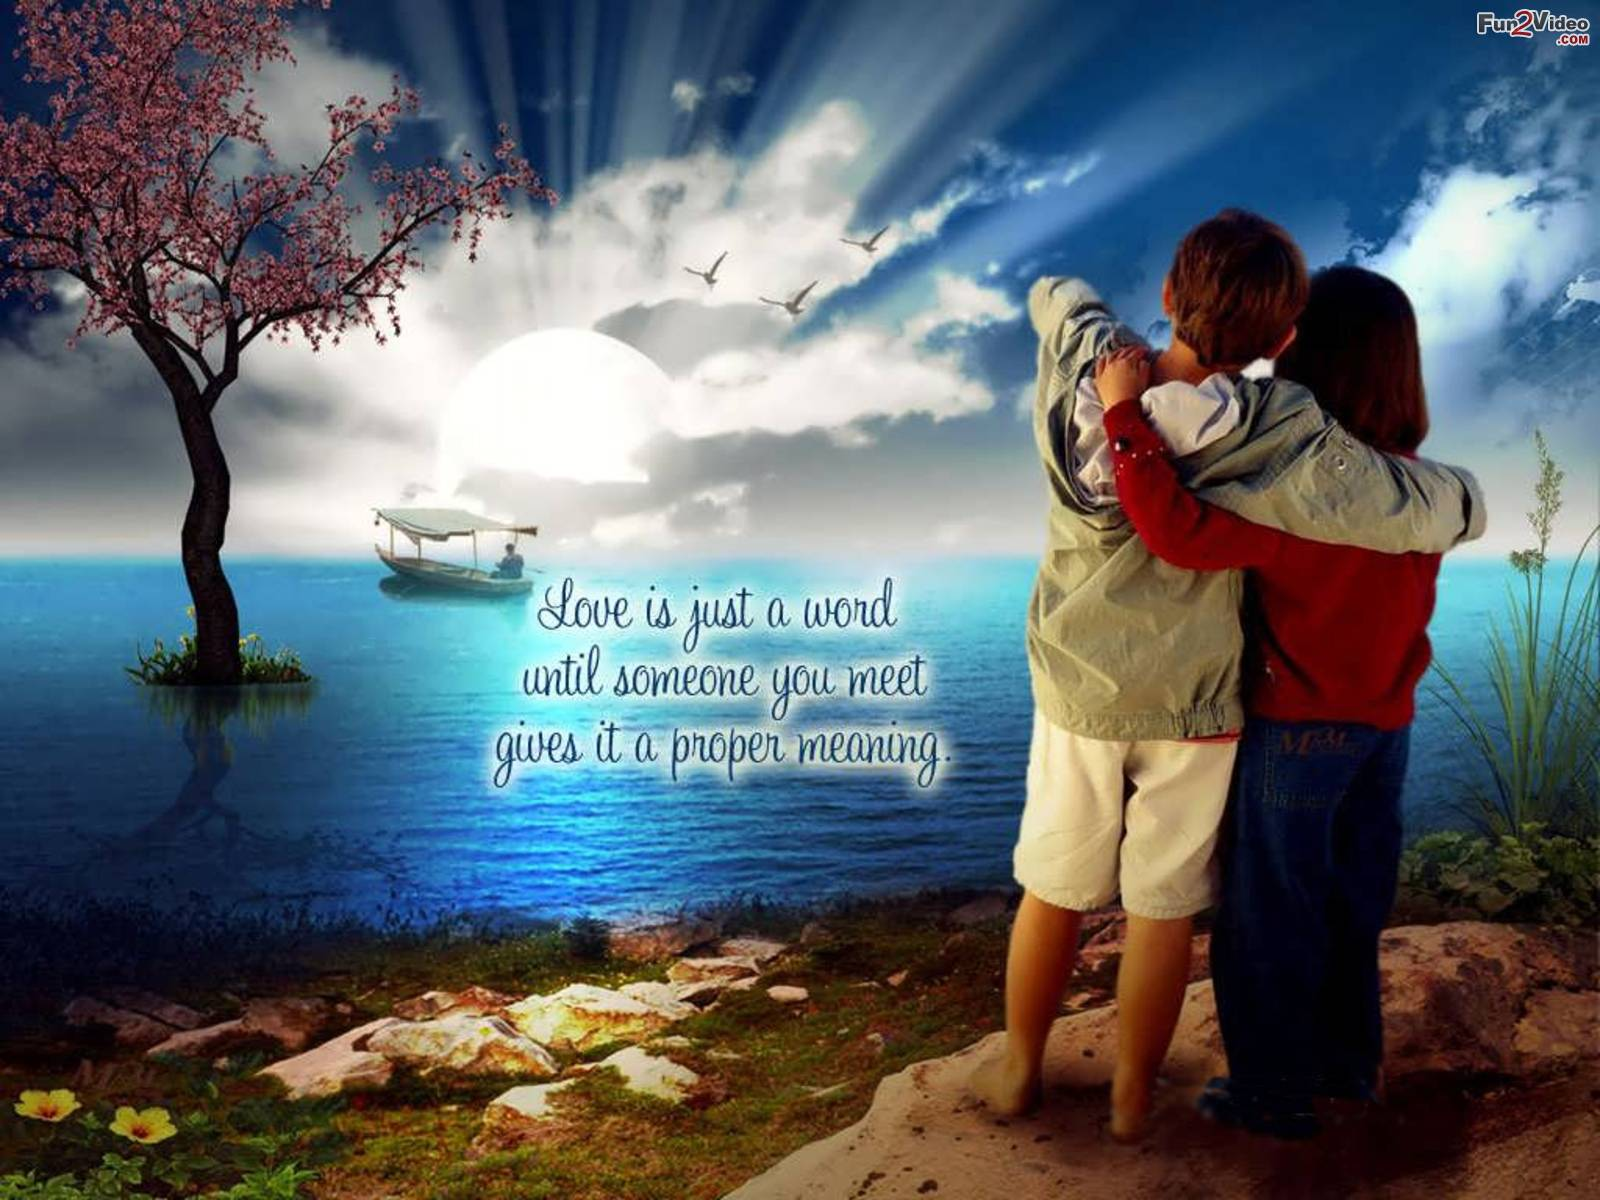 Love Wallpaper Of Romantic Love Couple With Love Quotes To Show Love 1600x1200